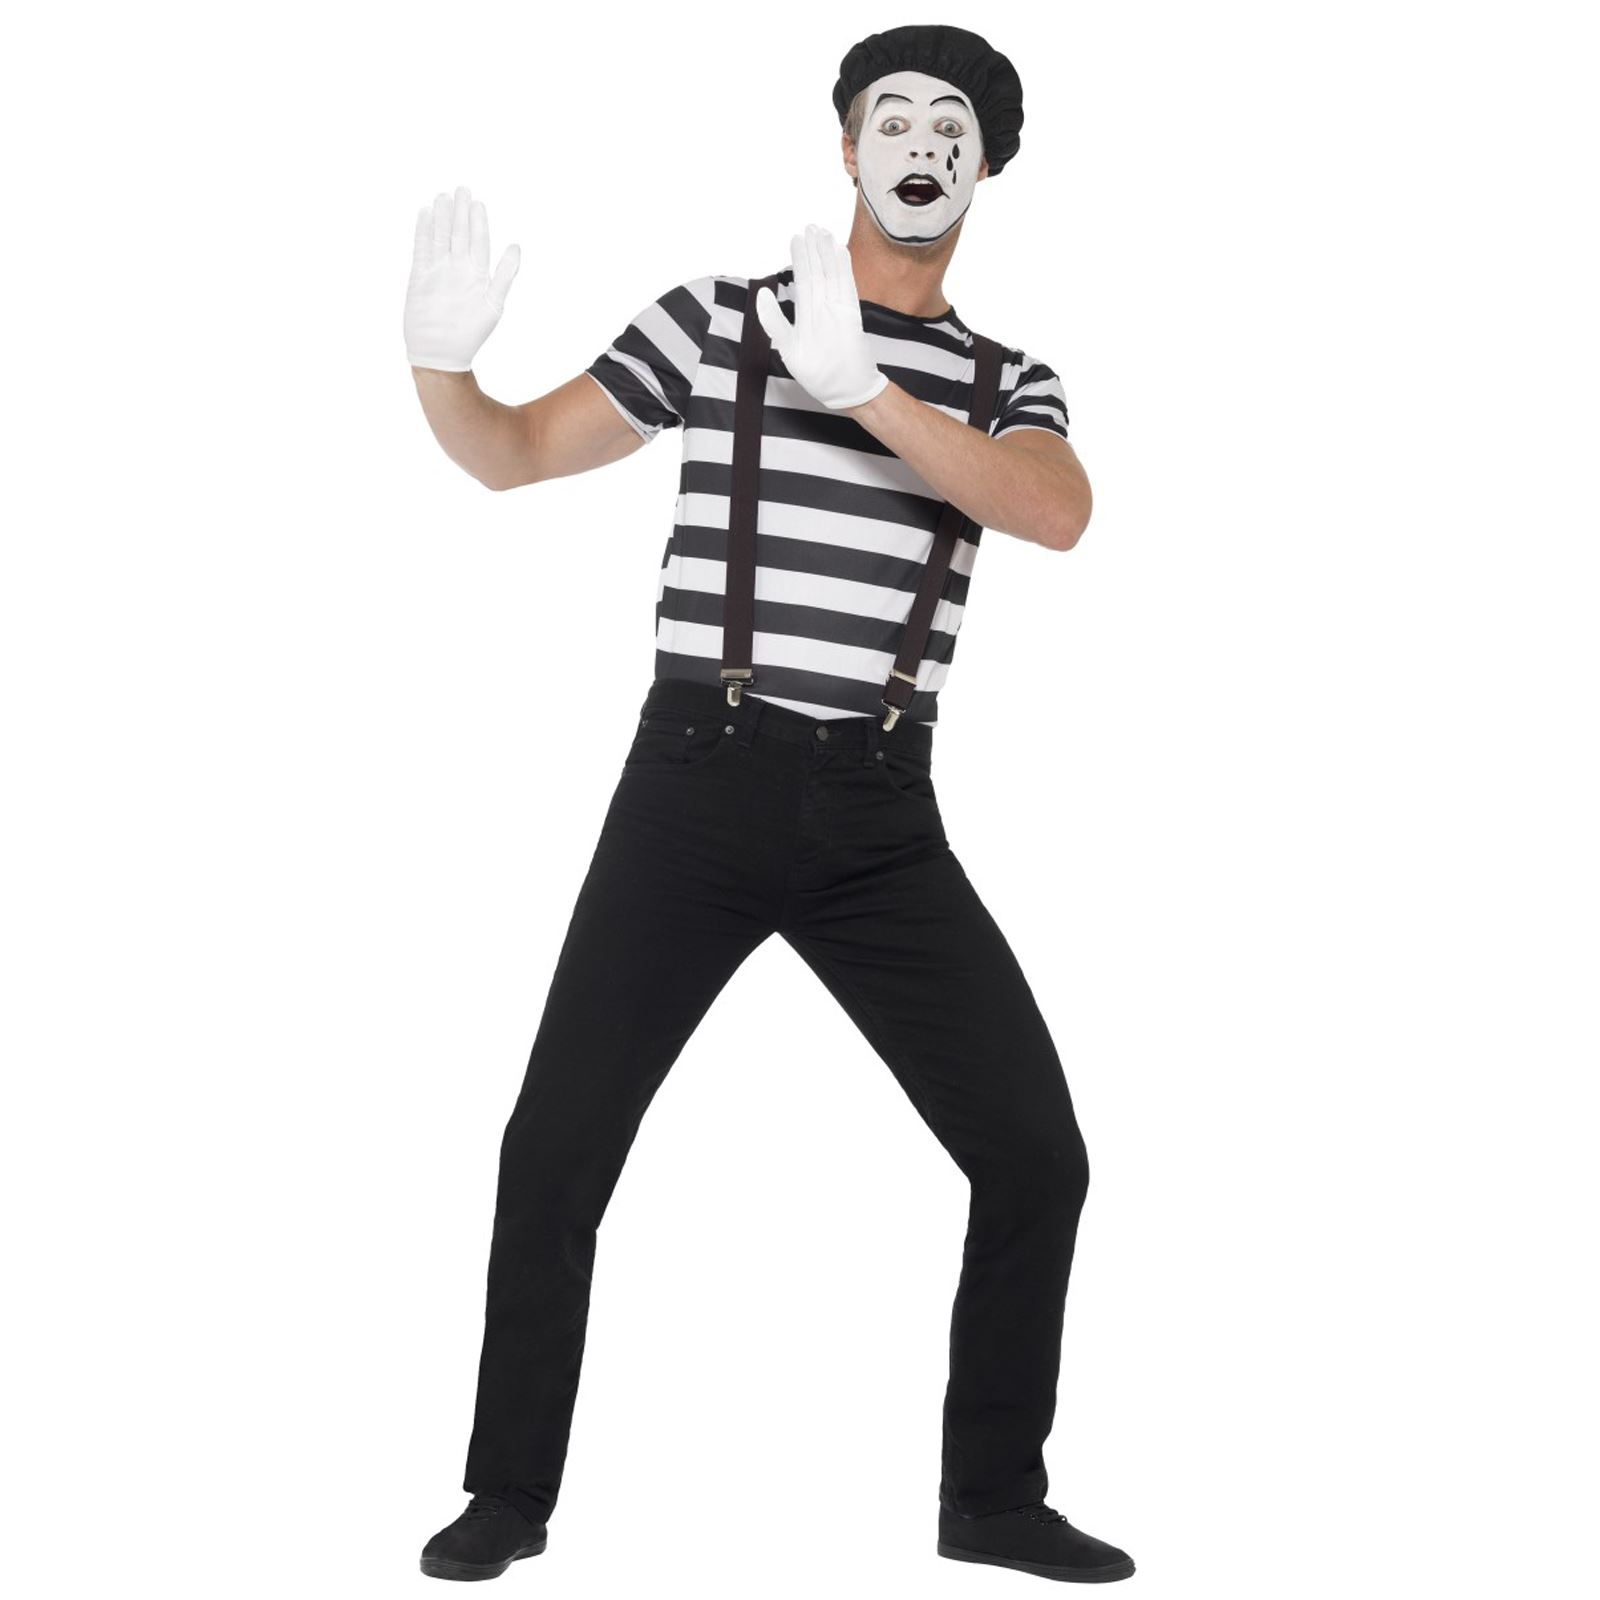 Image result for french mime